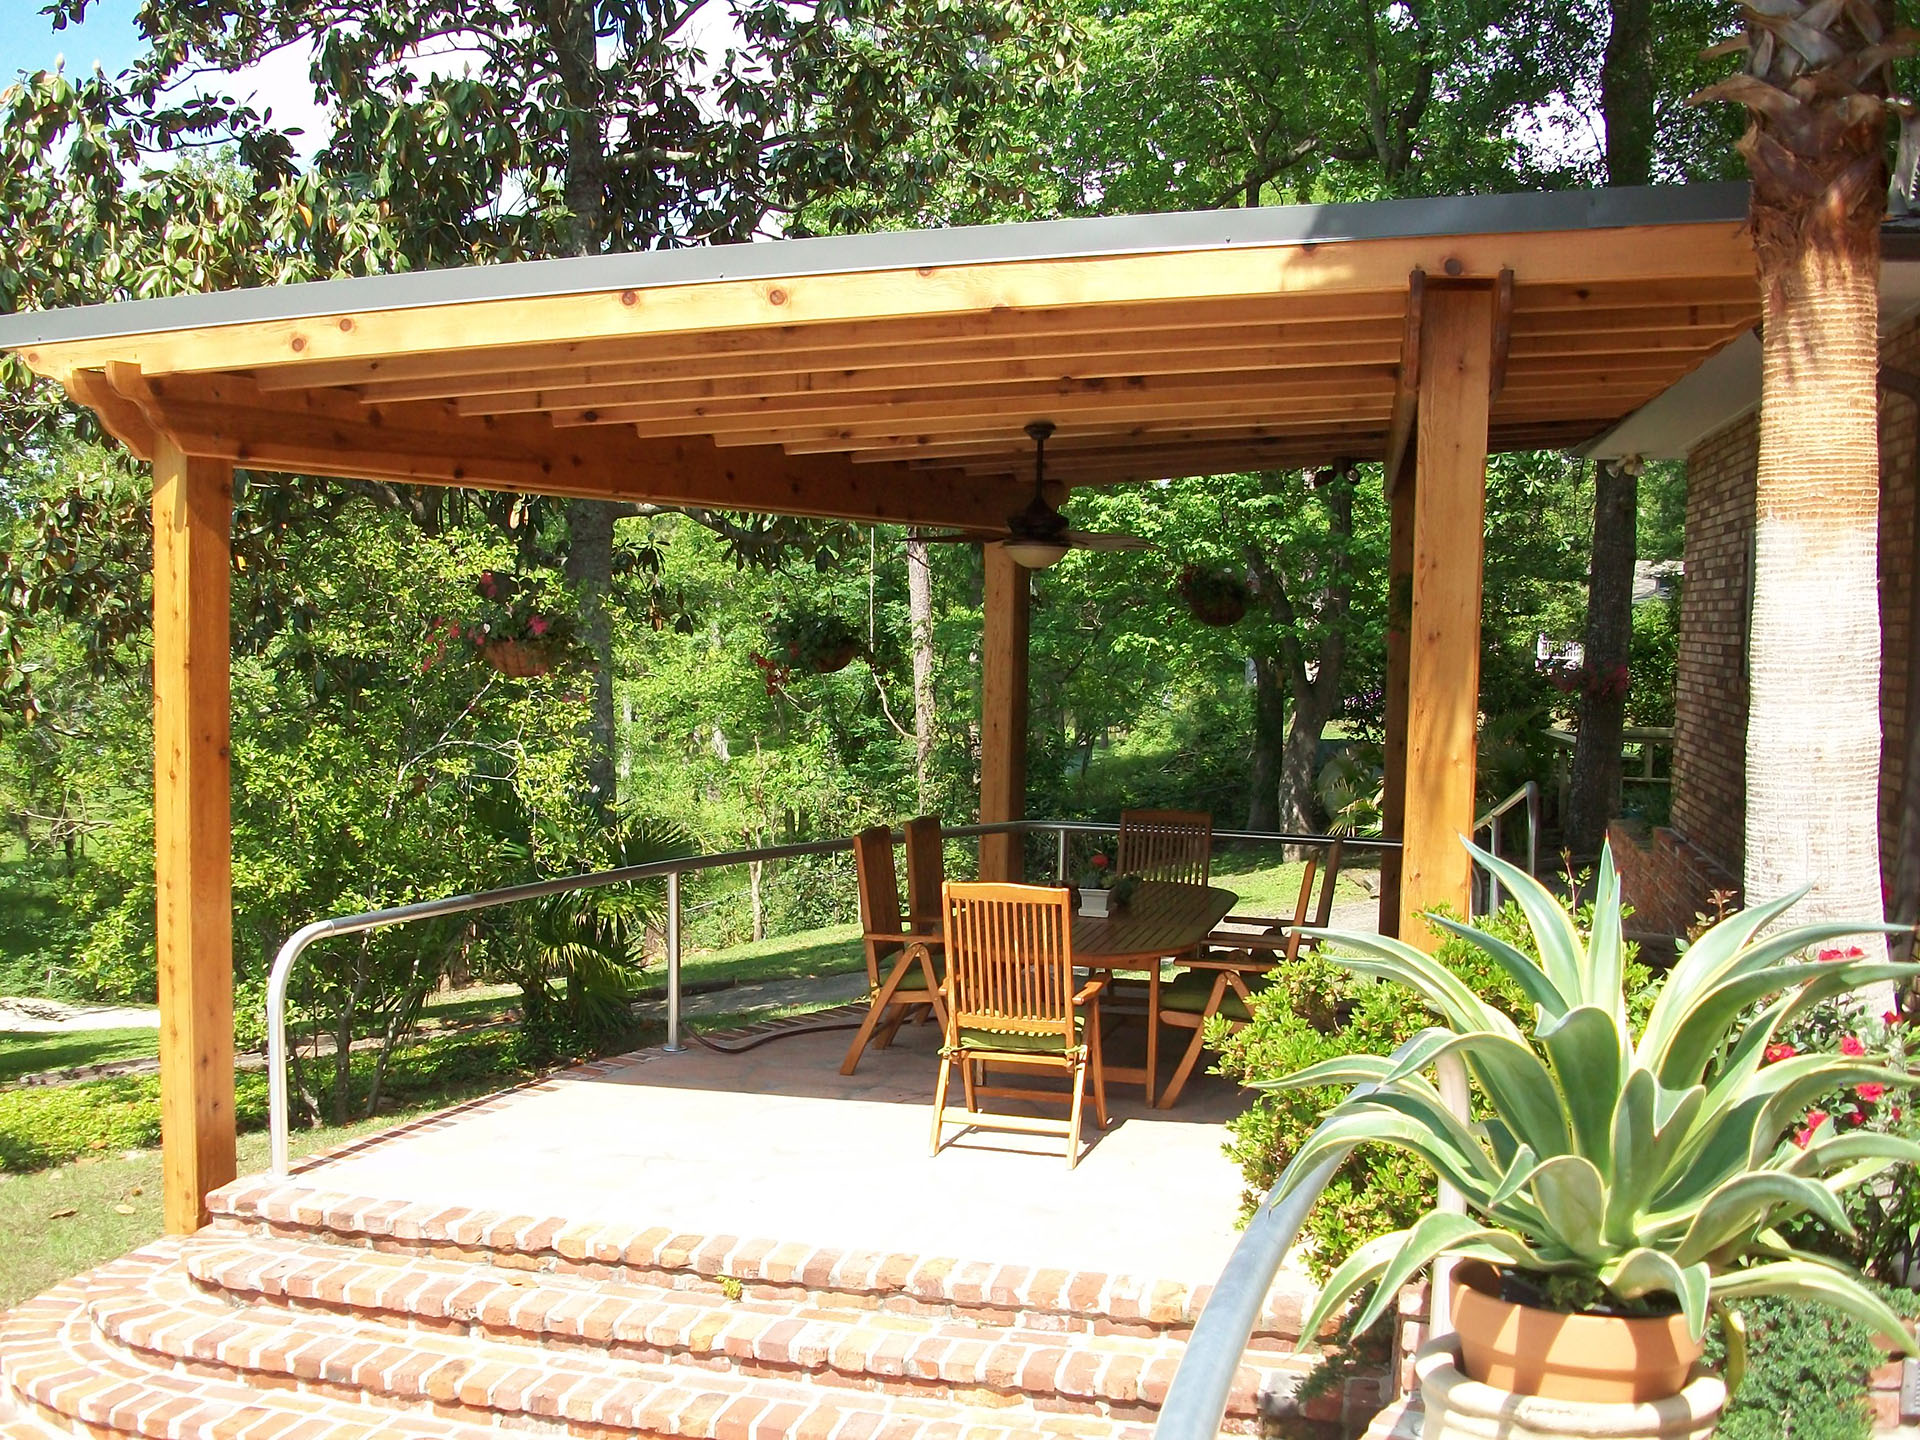 New Orleans Roof Covers   Outdoor Living   Custom Outdoor ... on Backyard Patio Extension Ideas id=84472